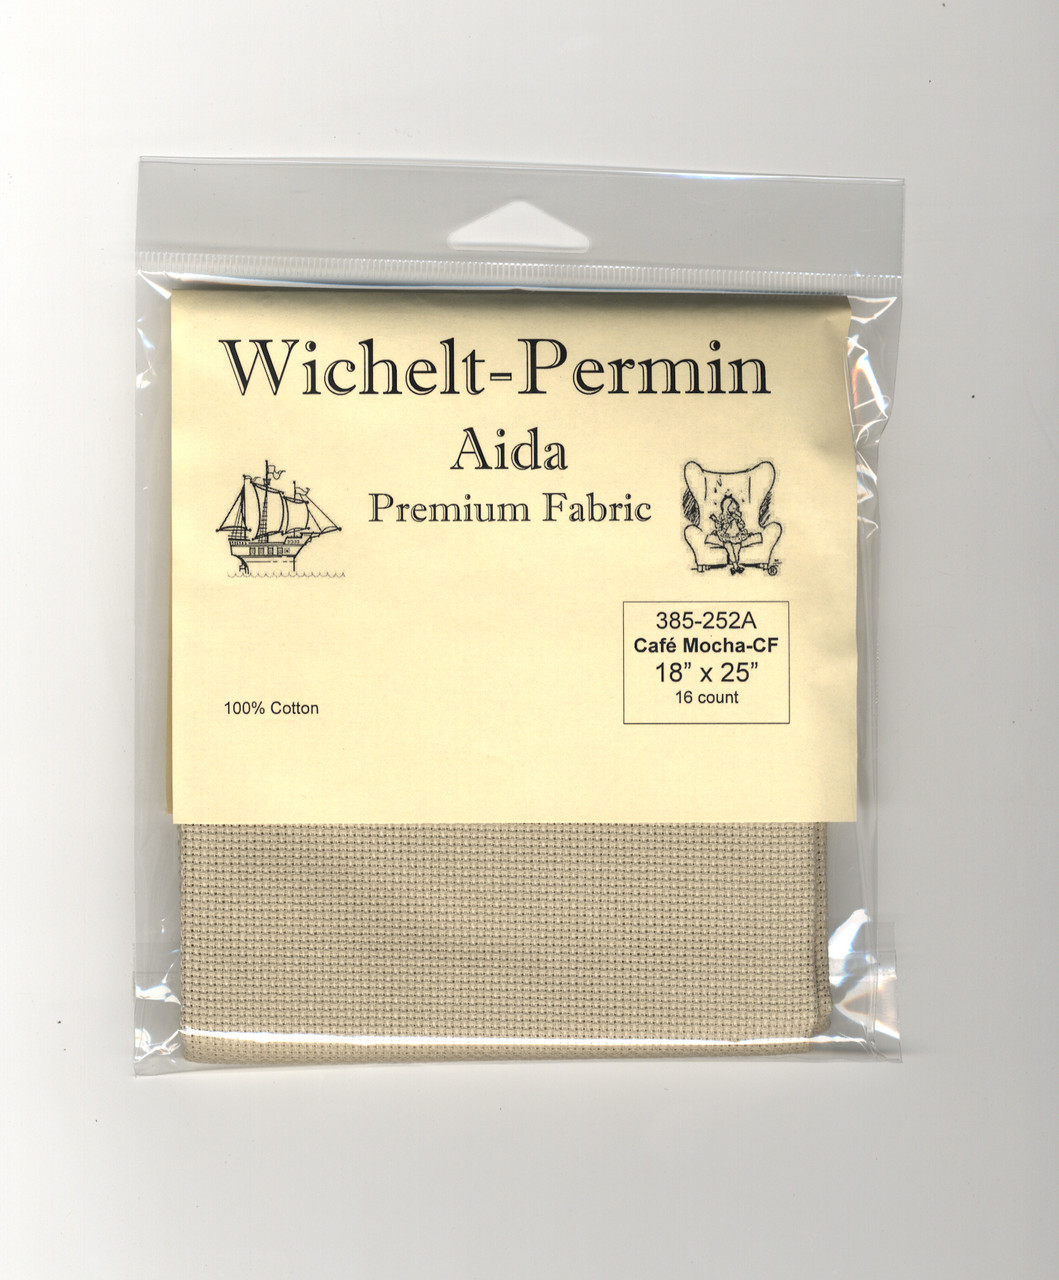 Wichelt - 16 Ct Country French Cafe Mocha Aida 18 x 25 in